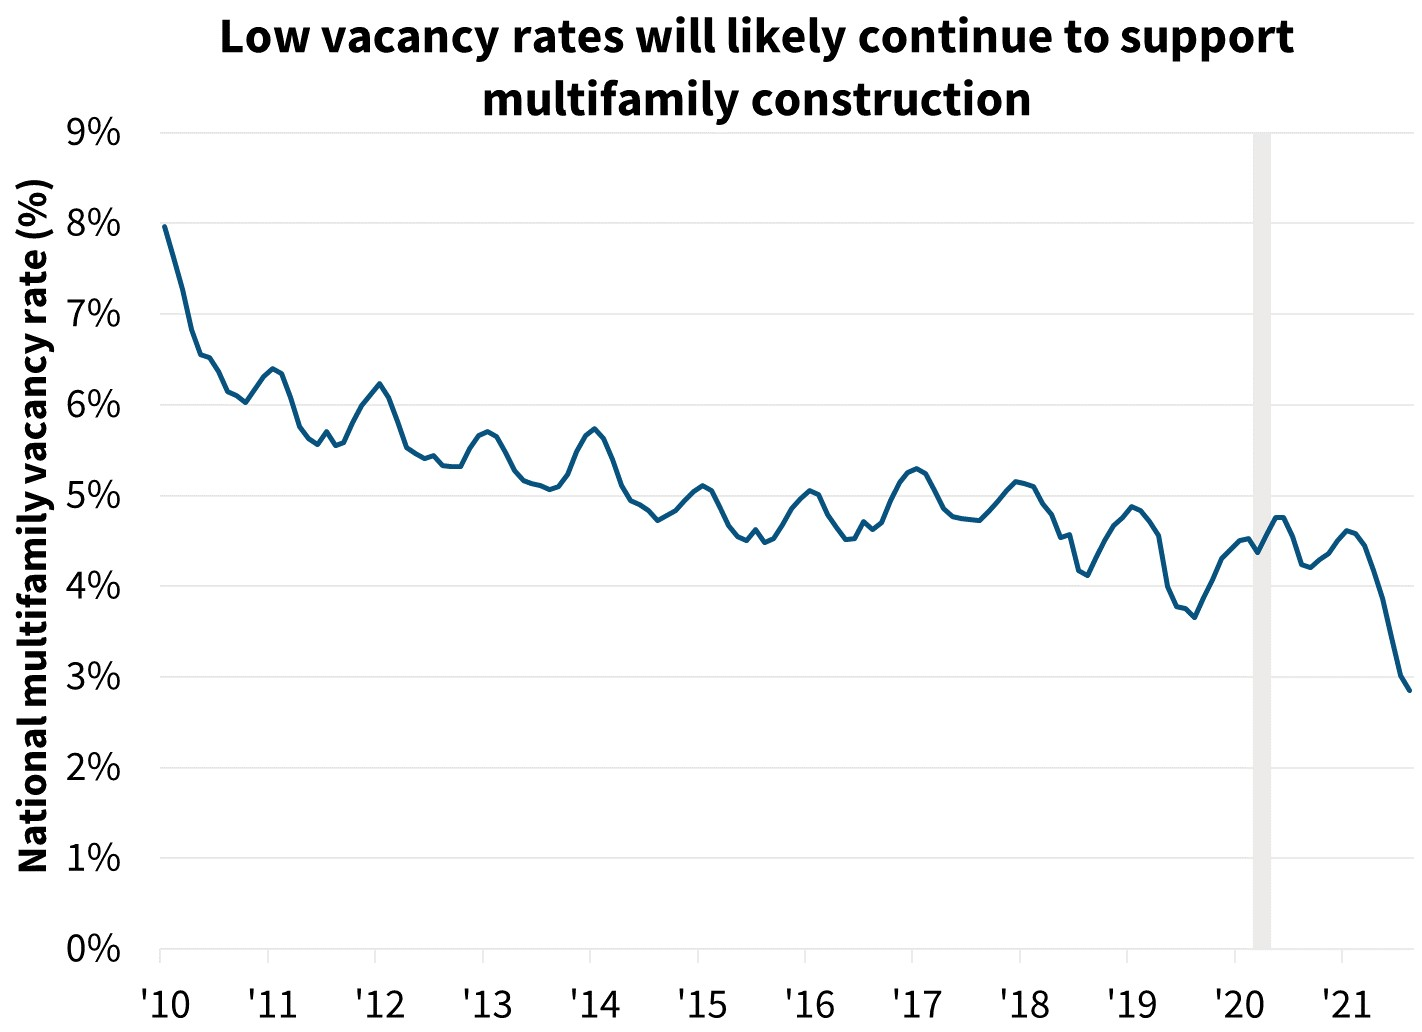 Low vacancy rates will likely continue to support multifamily construction